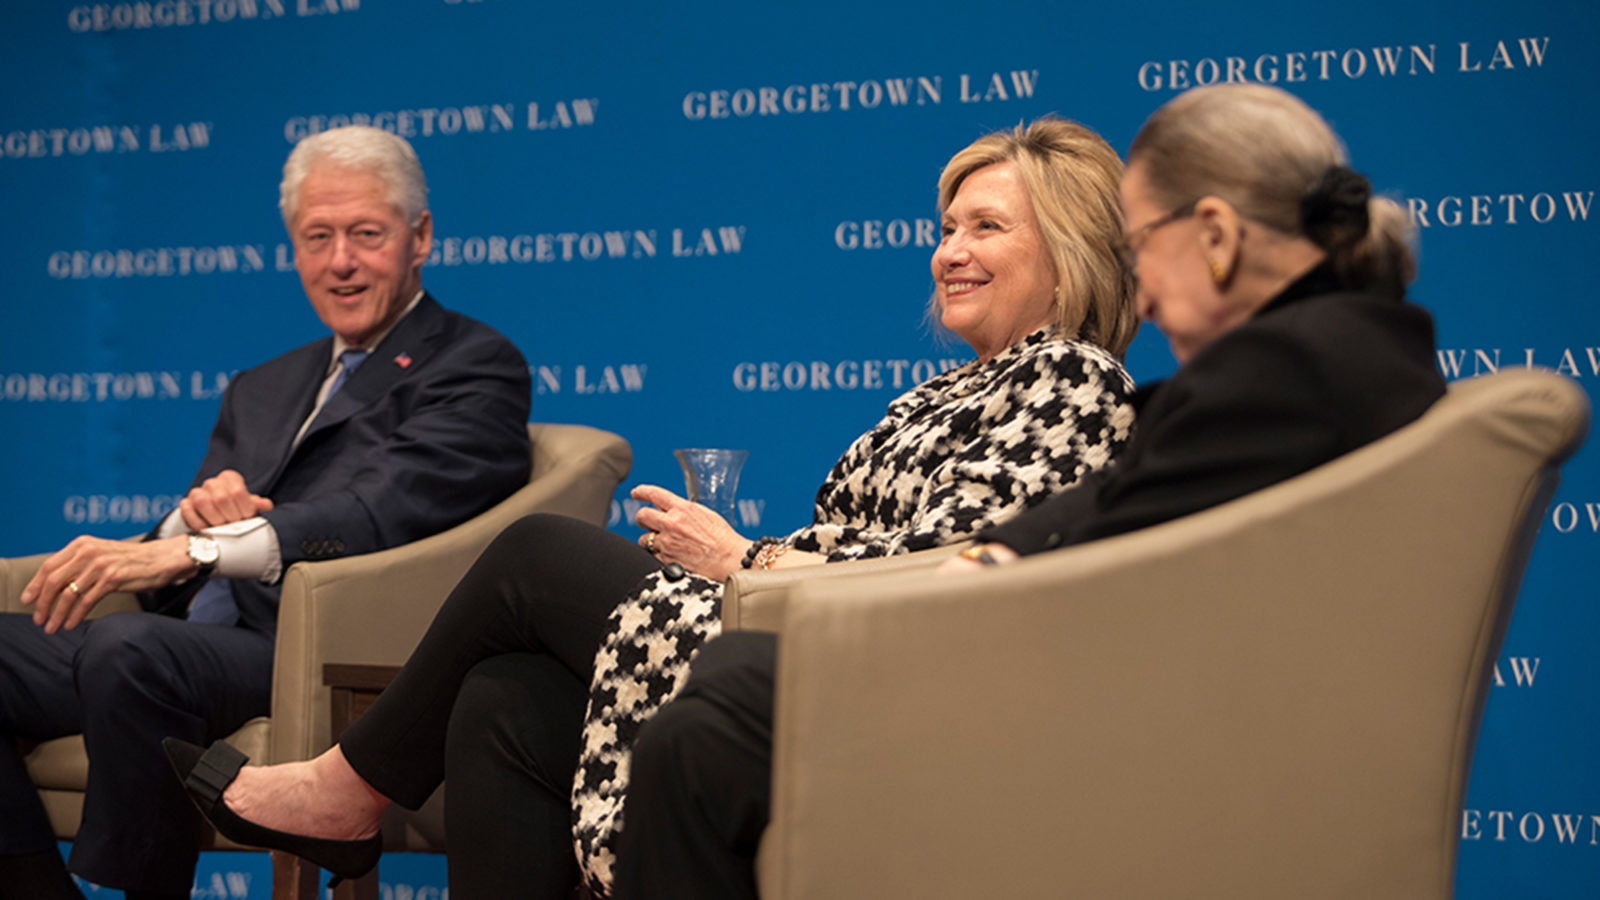 Bill Clinton and Hillary Rodham Clinton sit with Ruth Bader Ginsburg on stage with Georgetown Law signage in the background.